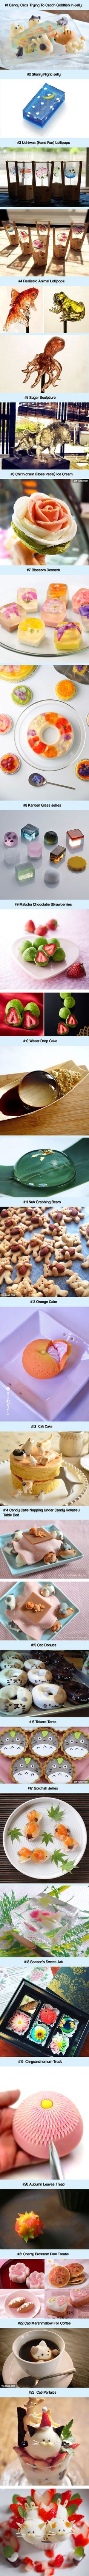 Crafty desserts from Japan - These are Stunning! Ali would love all of the kitties. Japanese Candy, Japanese Sweets, Cute Japanese, Japanese Food, Cute Food, Yummy Food, Cookies Et Biscuits, Cake Cookies, Macaron